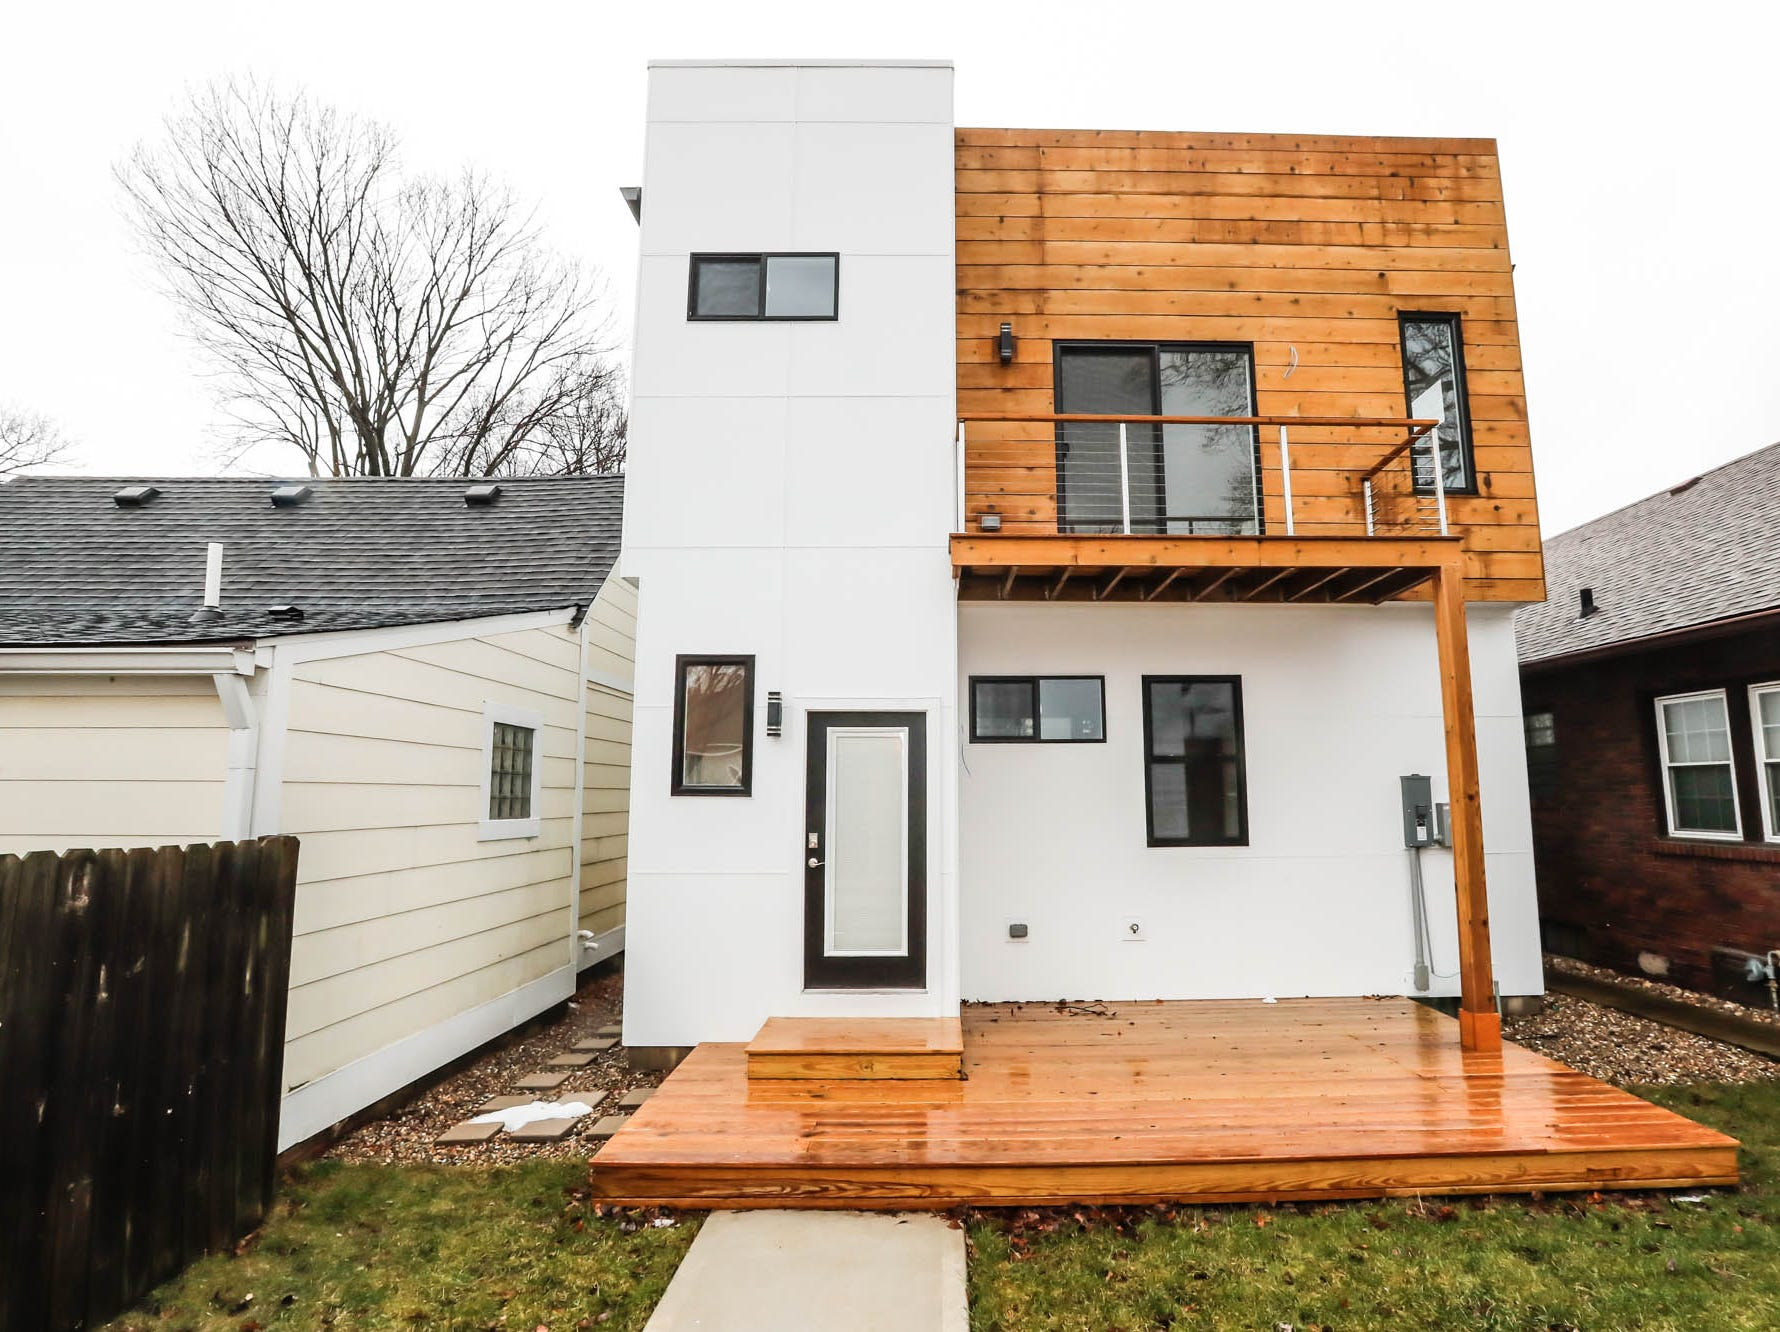 A newly built modern architectural home, rear showed here, is up for sale at 1134 Woodlawn Ave., Indianapolis, Ind., 46203, in the heart of the historic Fountain Square neighborhood on Wednesday, January 23, 2019. The three-story home, which features 2,030-square-feet and an open space concept tile and hardwood floors are priced at $479,900.